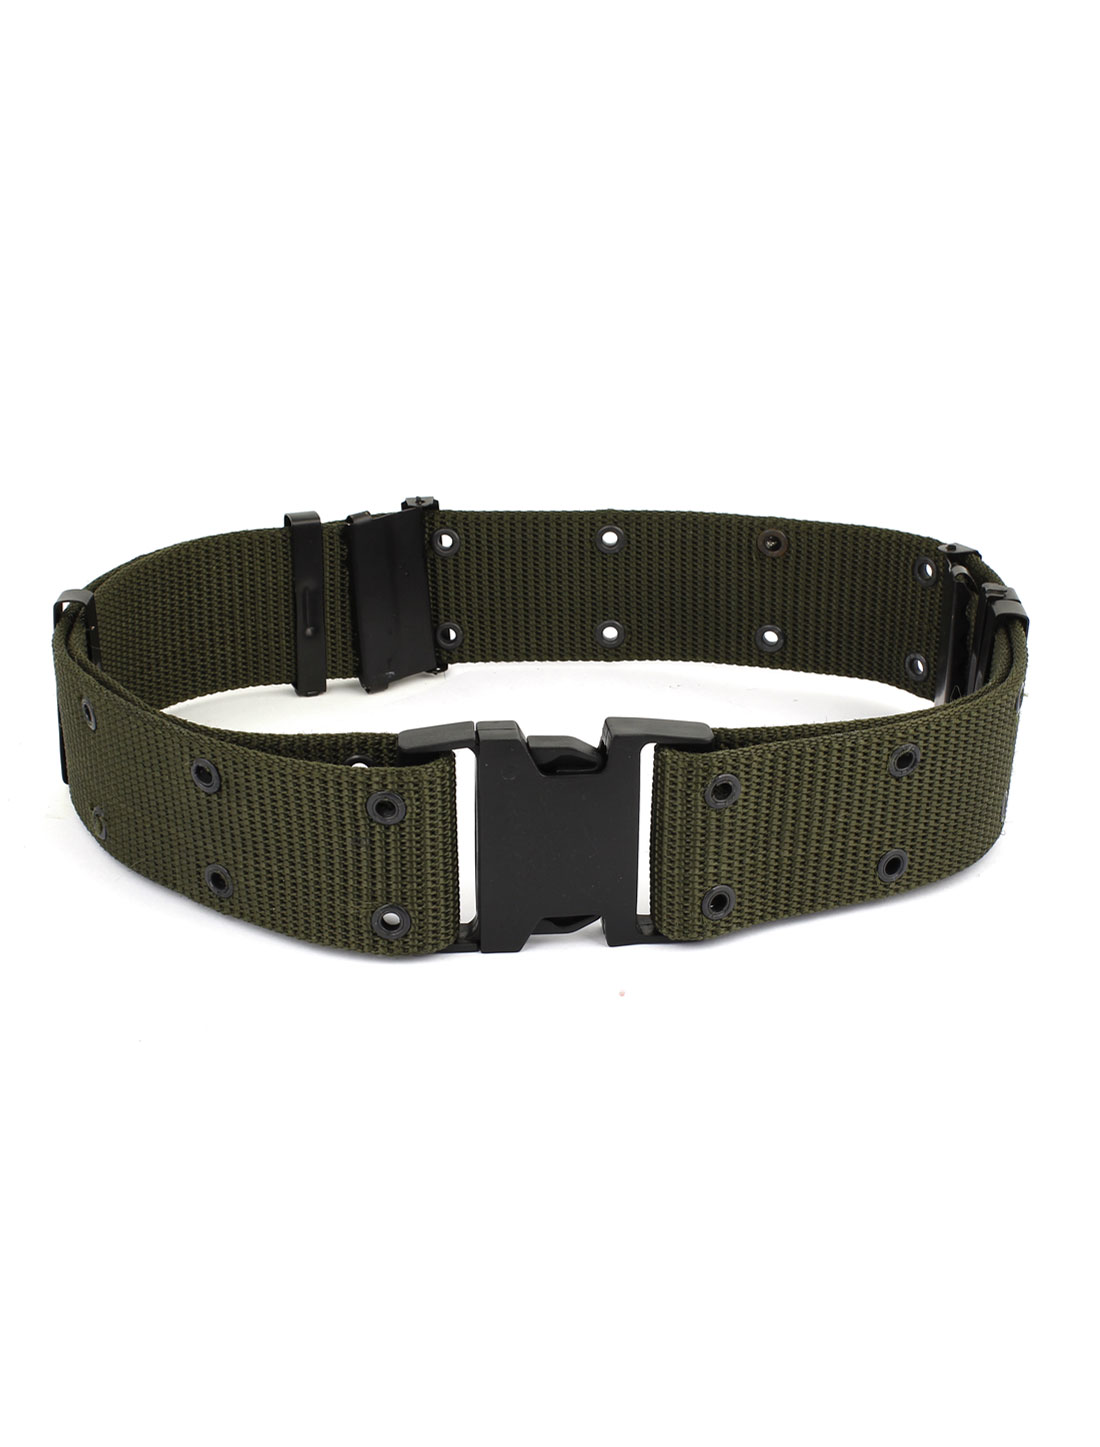 Double Row 16 Perforated Hole Release Buckle Outdoor Military Canvas Belt Amry Green